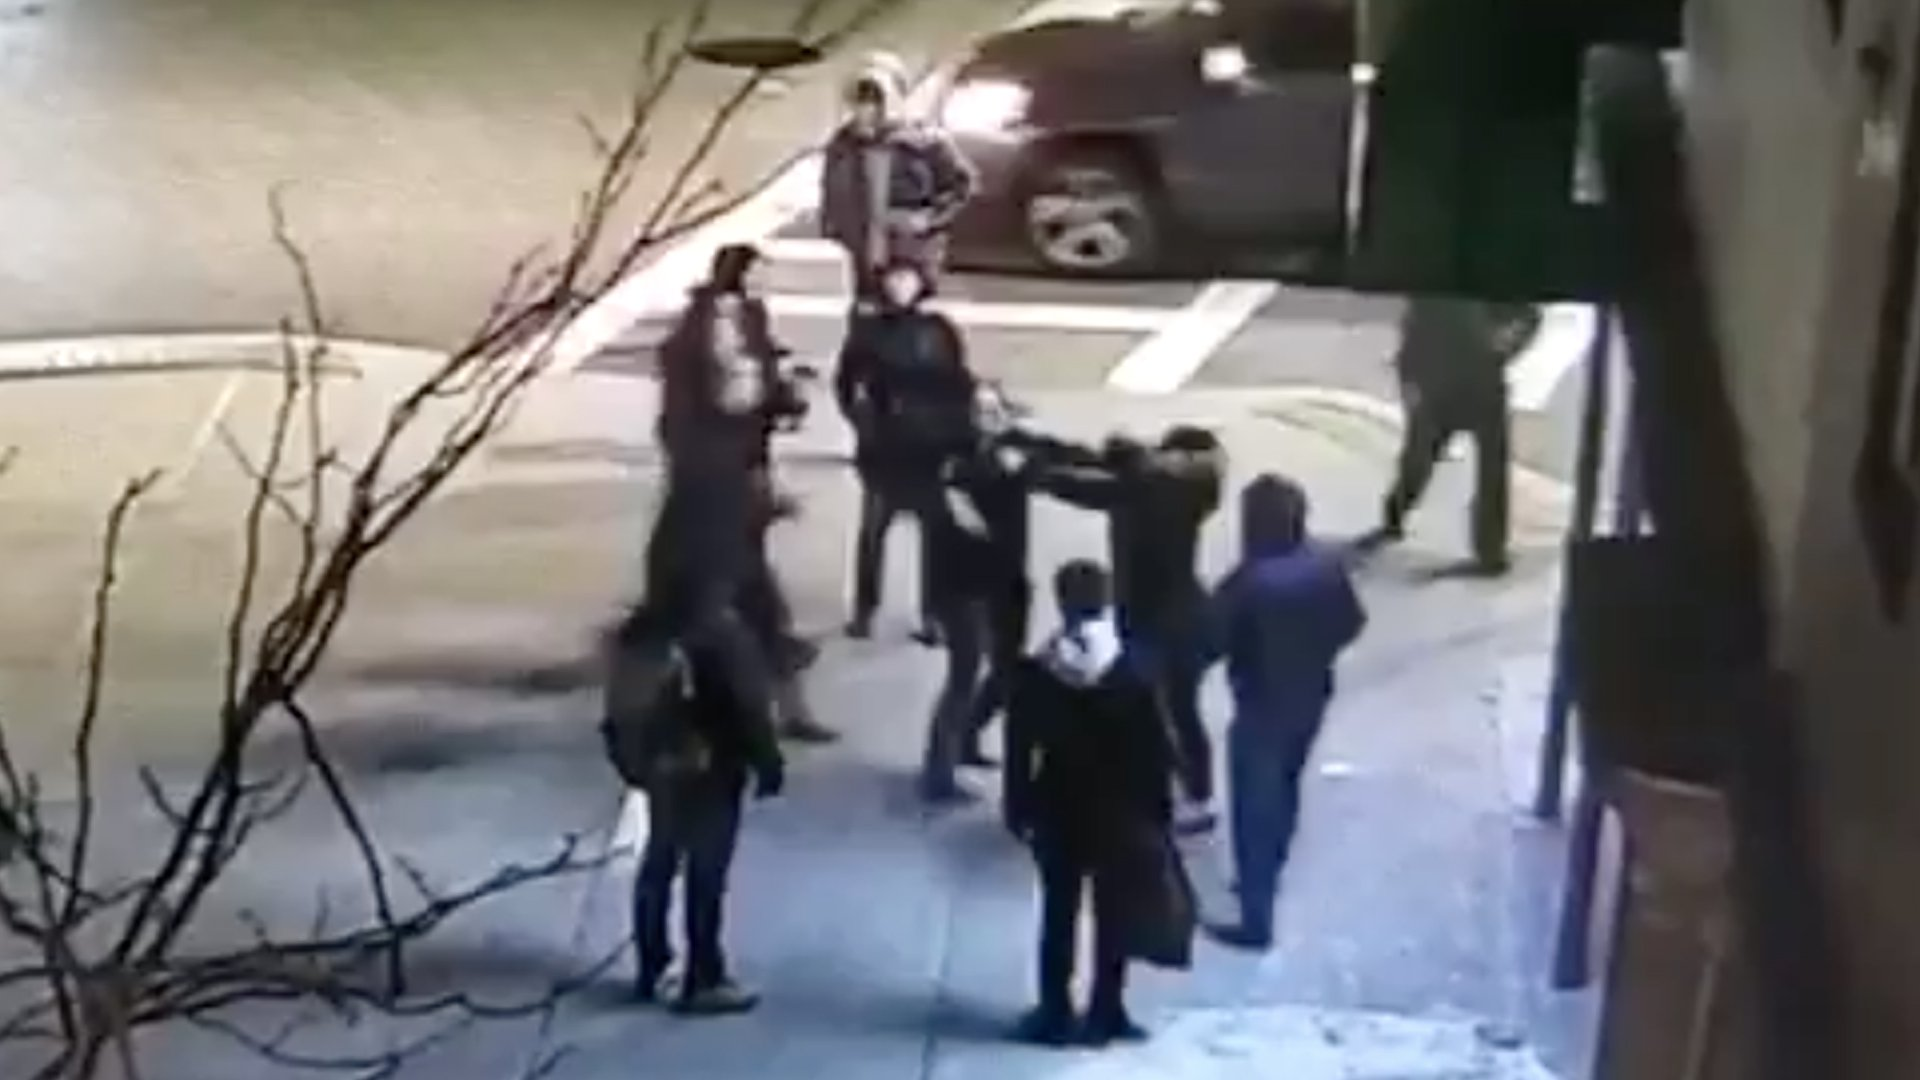 A woman and her 15-year-old daughter are attacked on the street in Boston in video released by Lawyers for Civil Rights.